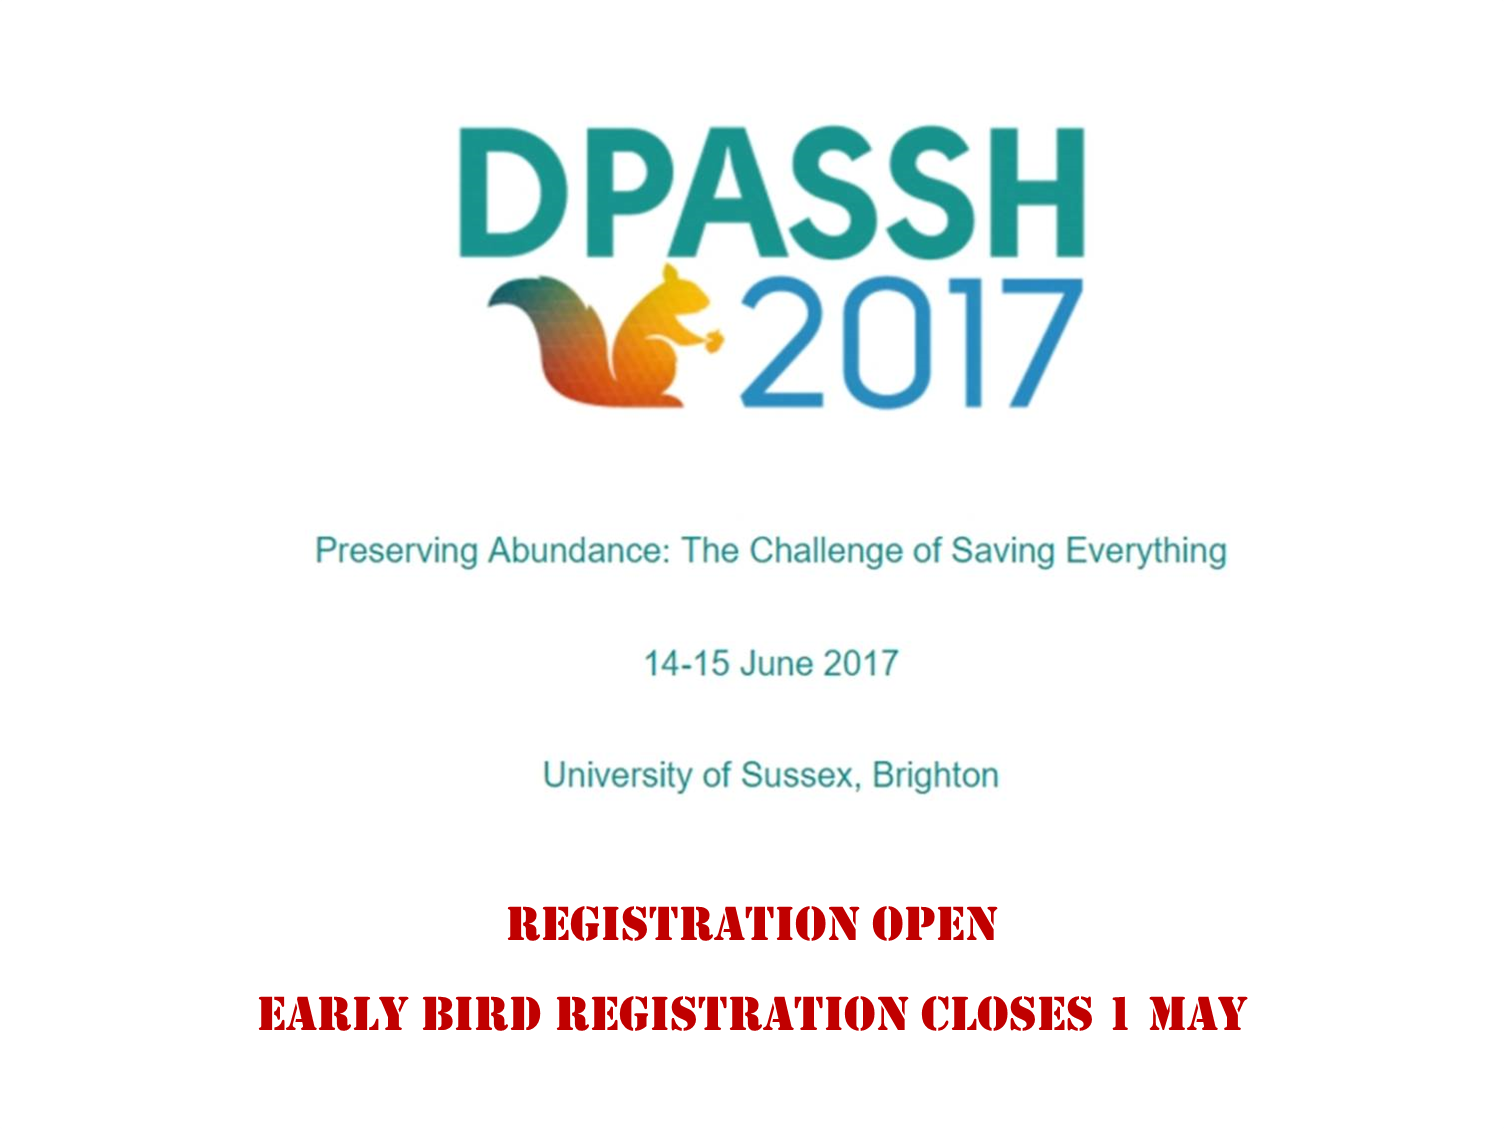 DPASSH 2017 Conference - Preserving Abundance: The Challenge of Saving Everything, 14-15 June 2017, Brighton, UK - Registration open